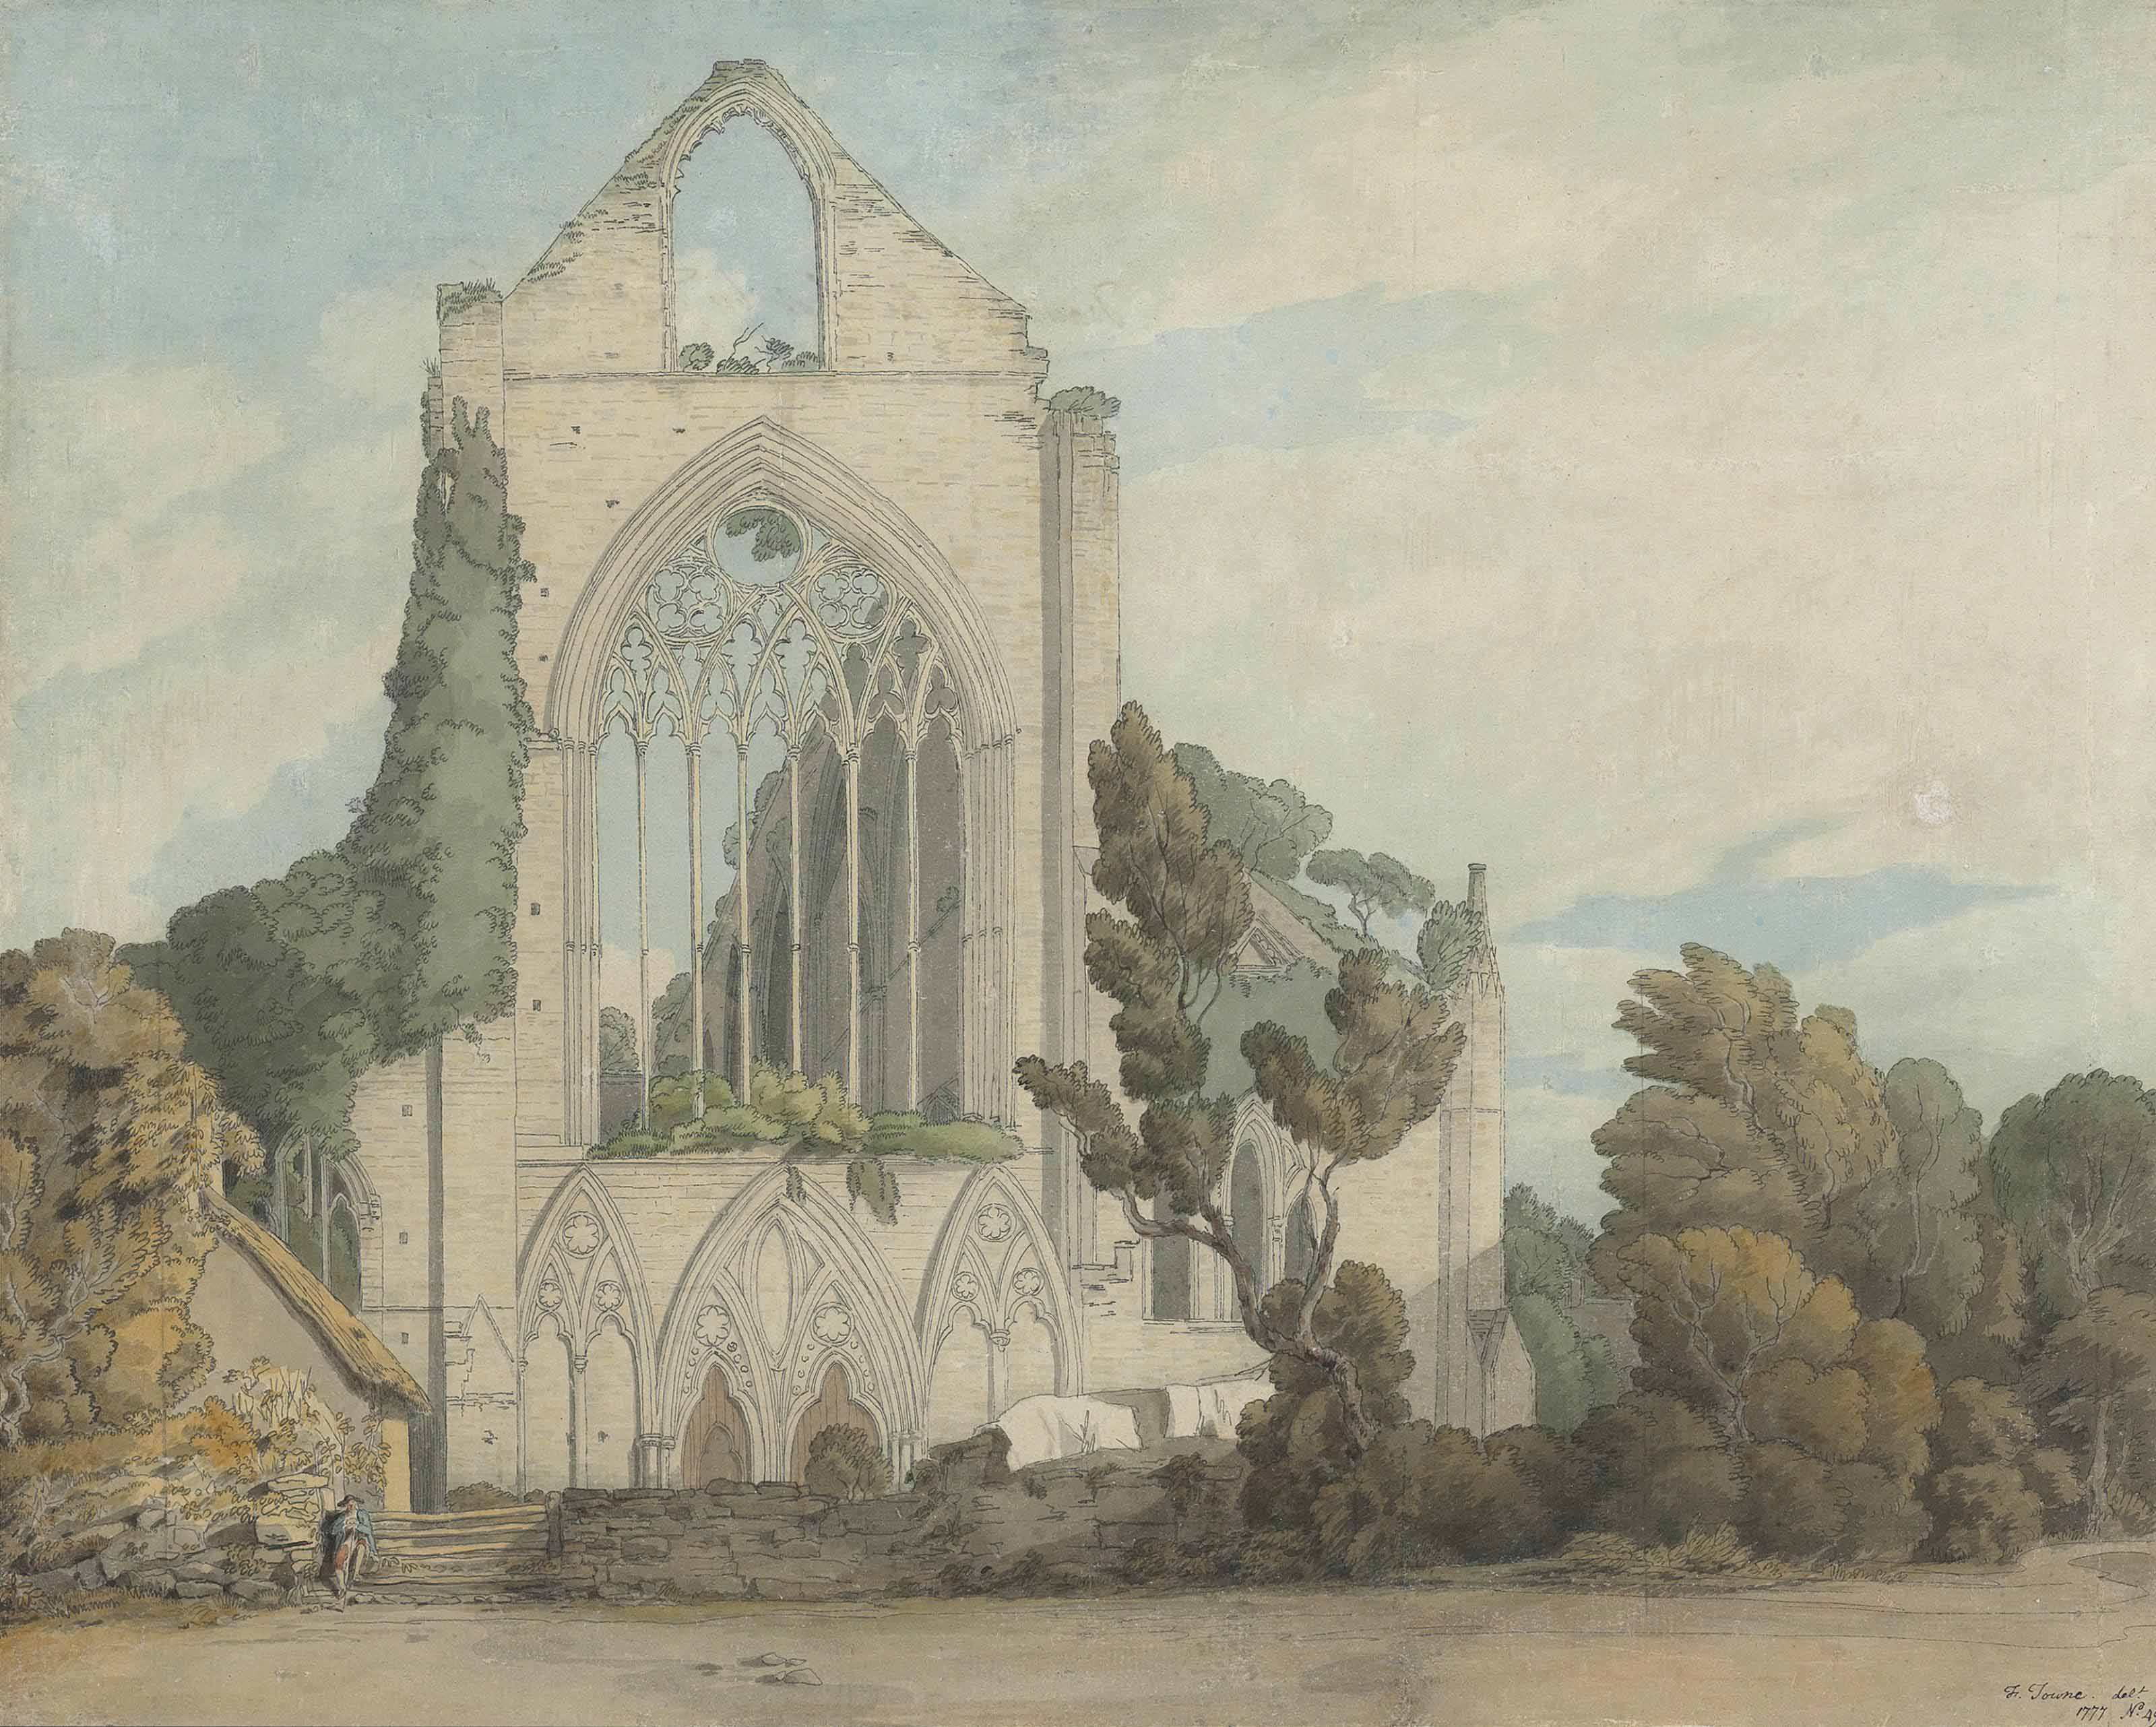 The West Front of Tintern Abbey, Monmouthshire